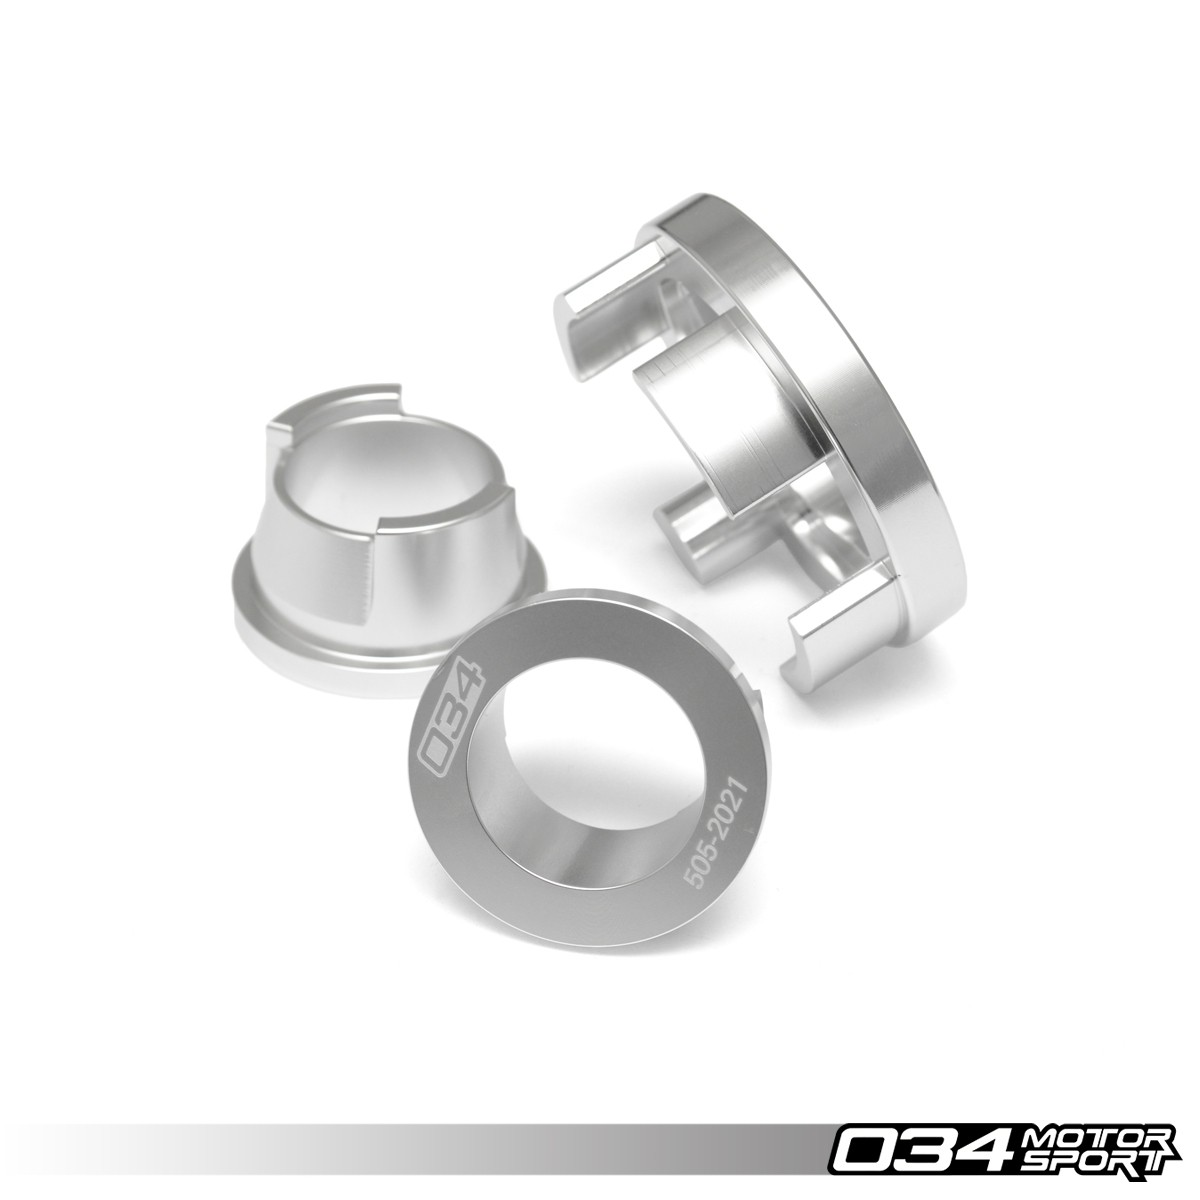 Billet Aluminum Rear Differential Mount Insert Kit, B9 Audi A4/S4 & Allroad | 034-505-2020